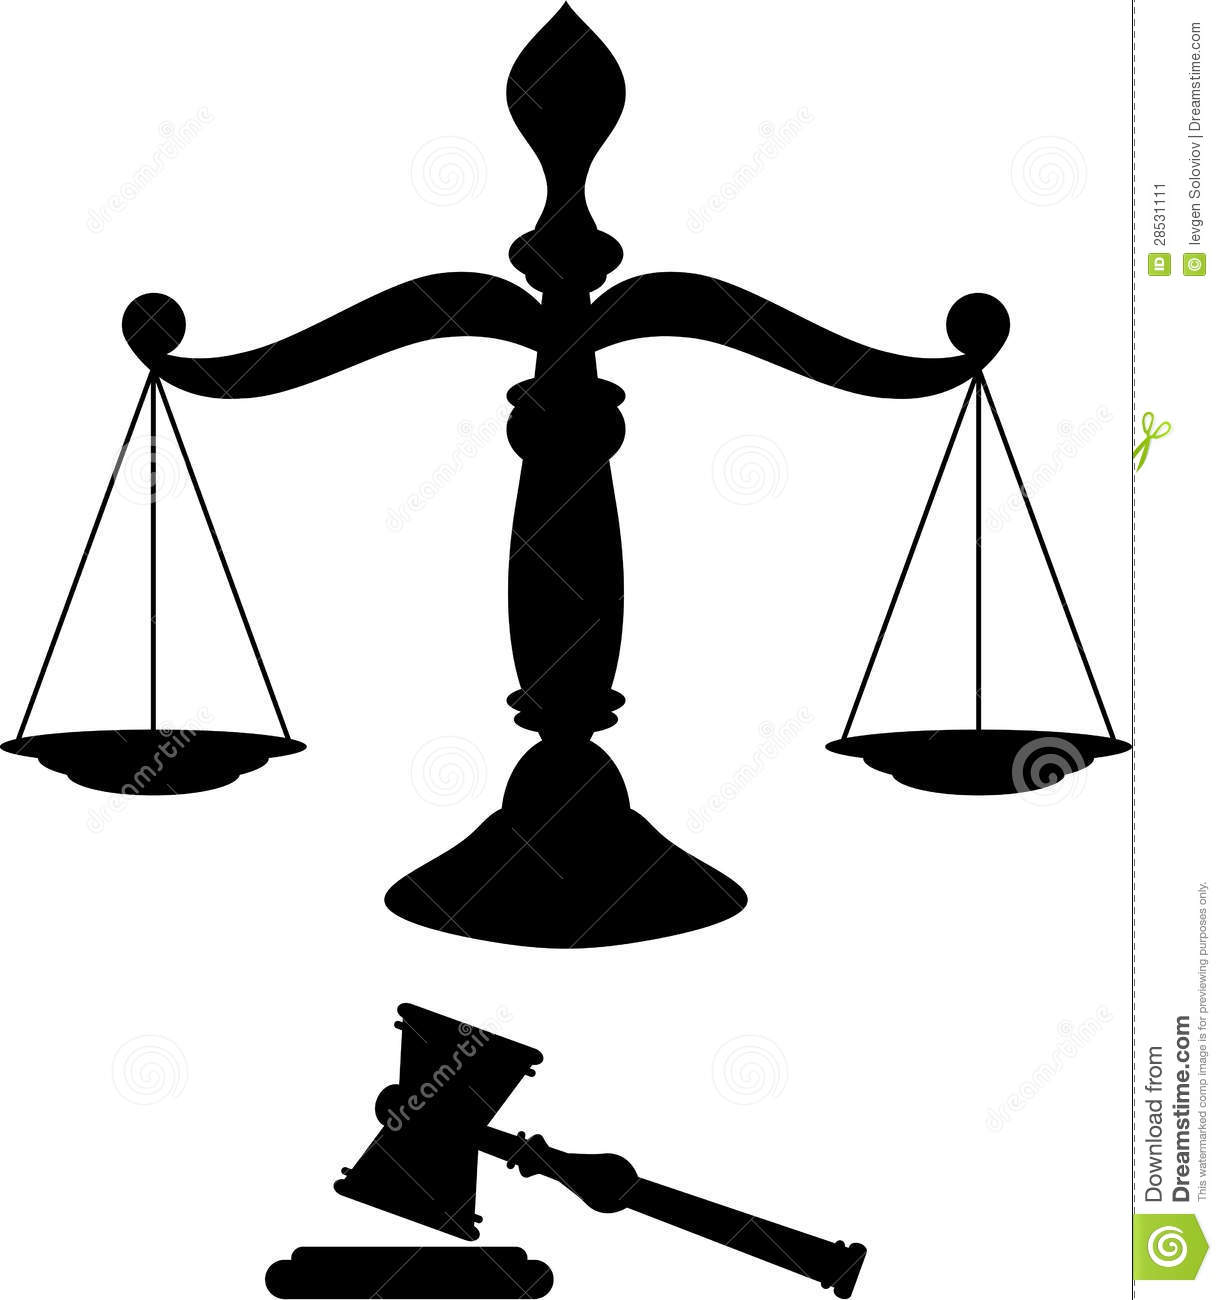 Black silhouette of scales of justice with gavel.: dreamstime.com/stock-image-scales-justice-image28531111